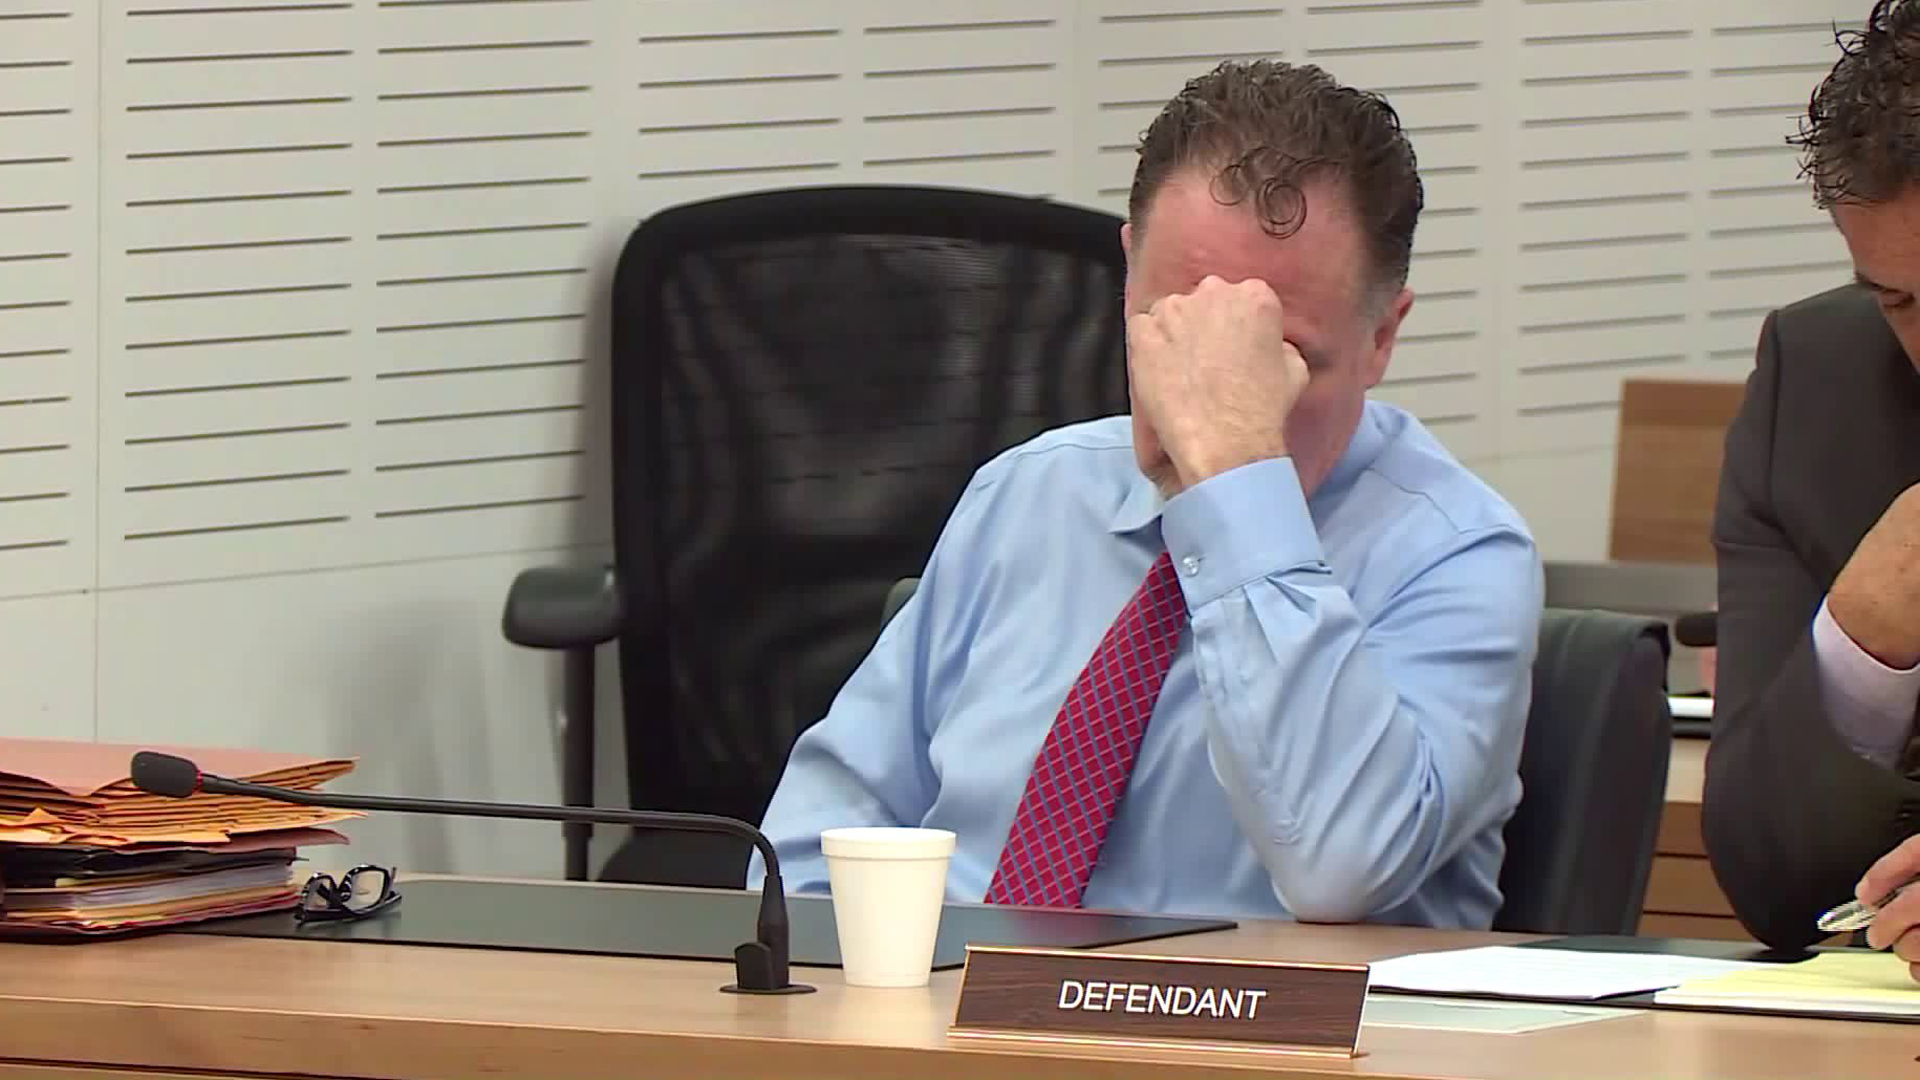 Charles Merritt reacts after a San Bernardino recommends he be sentenced to death on June 24, 2019. (Credit: KTLA)